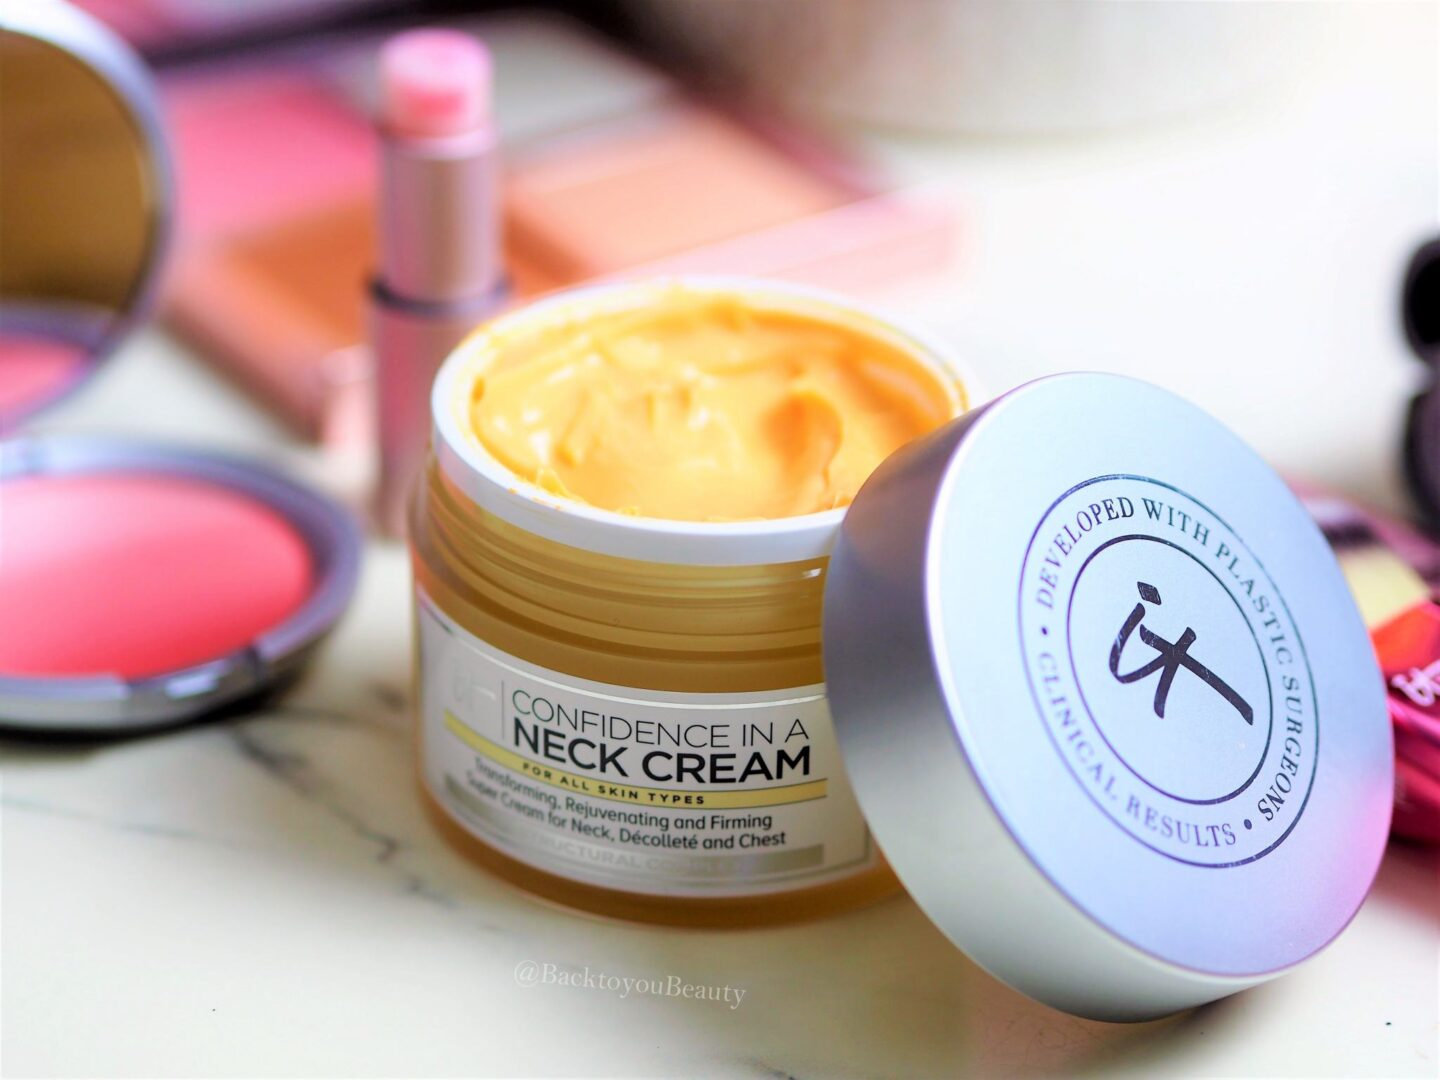 It Cosmetics Confidence in a neck cream